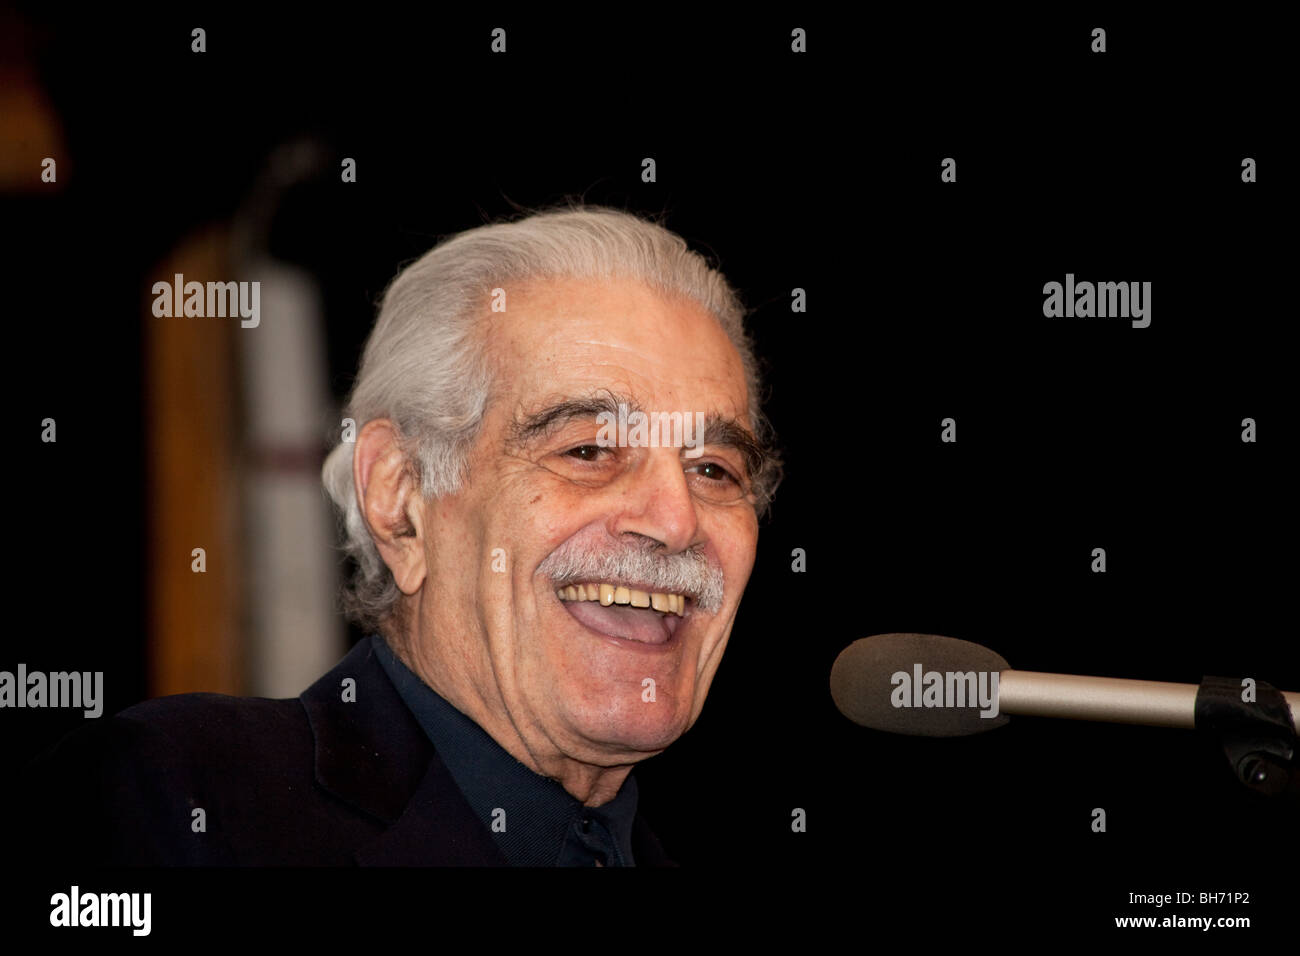 Omar Sharif talking at St John's Church, Cairo, February 2010, on tolerance at a showing of his film Hassan - Stock Image